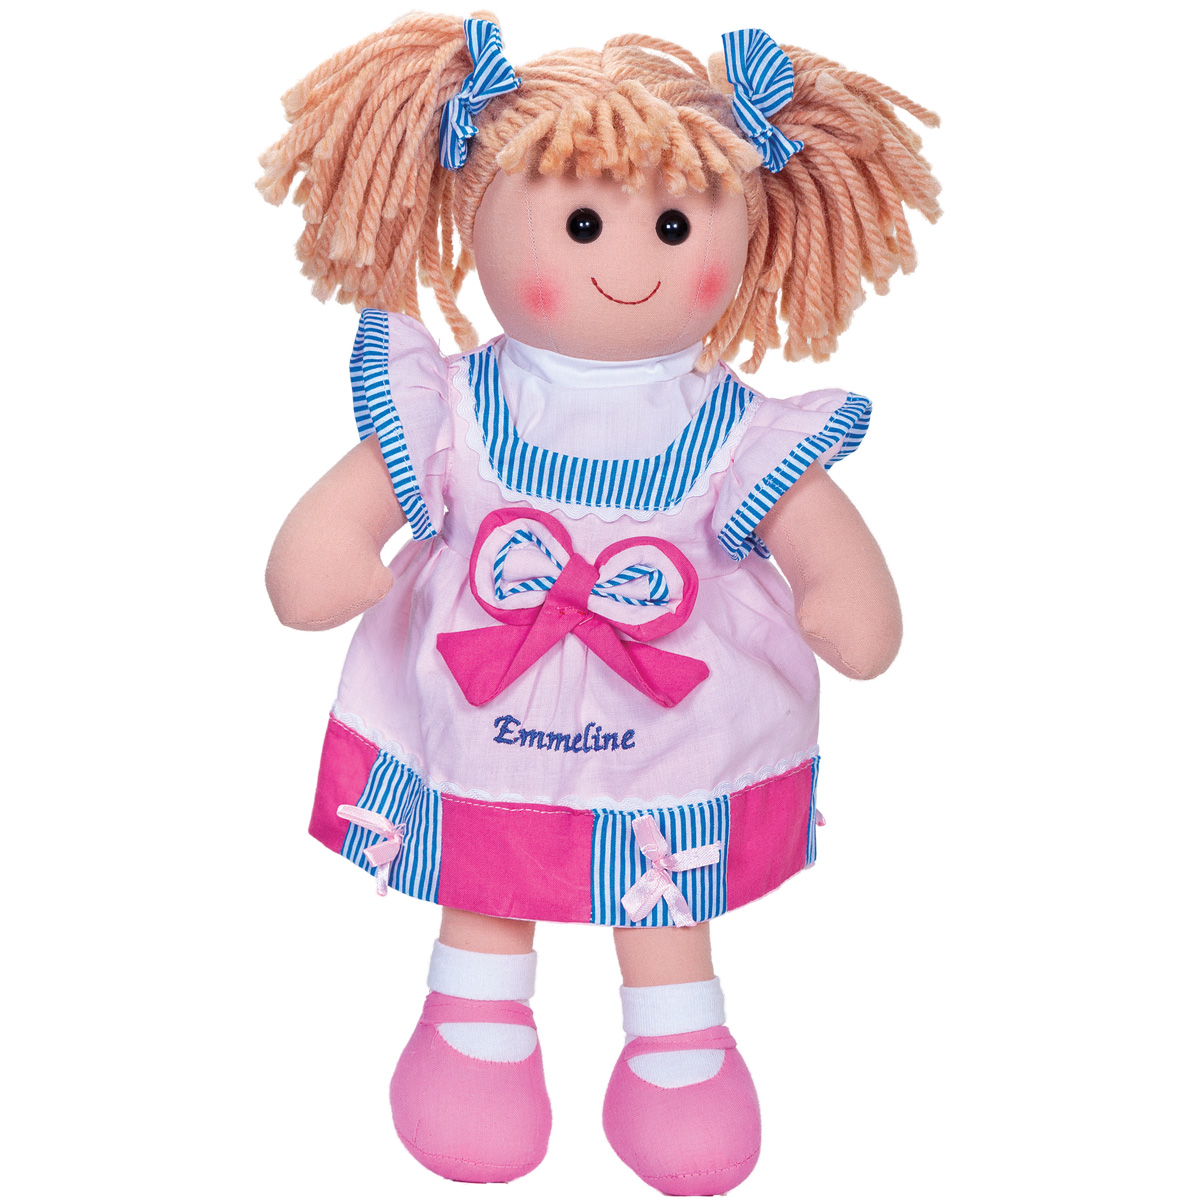 Personalised Rag Doll Blonde Kids Embroidered Gifts